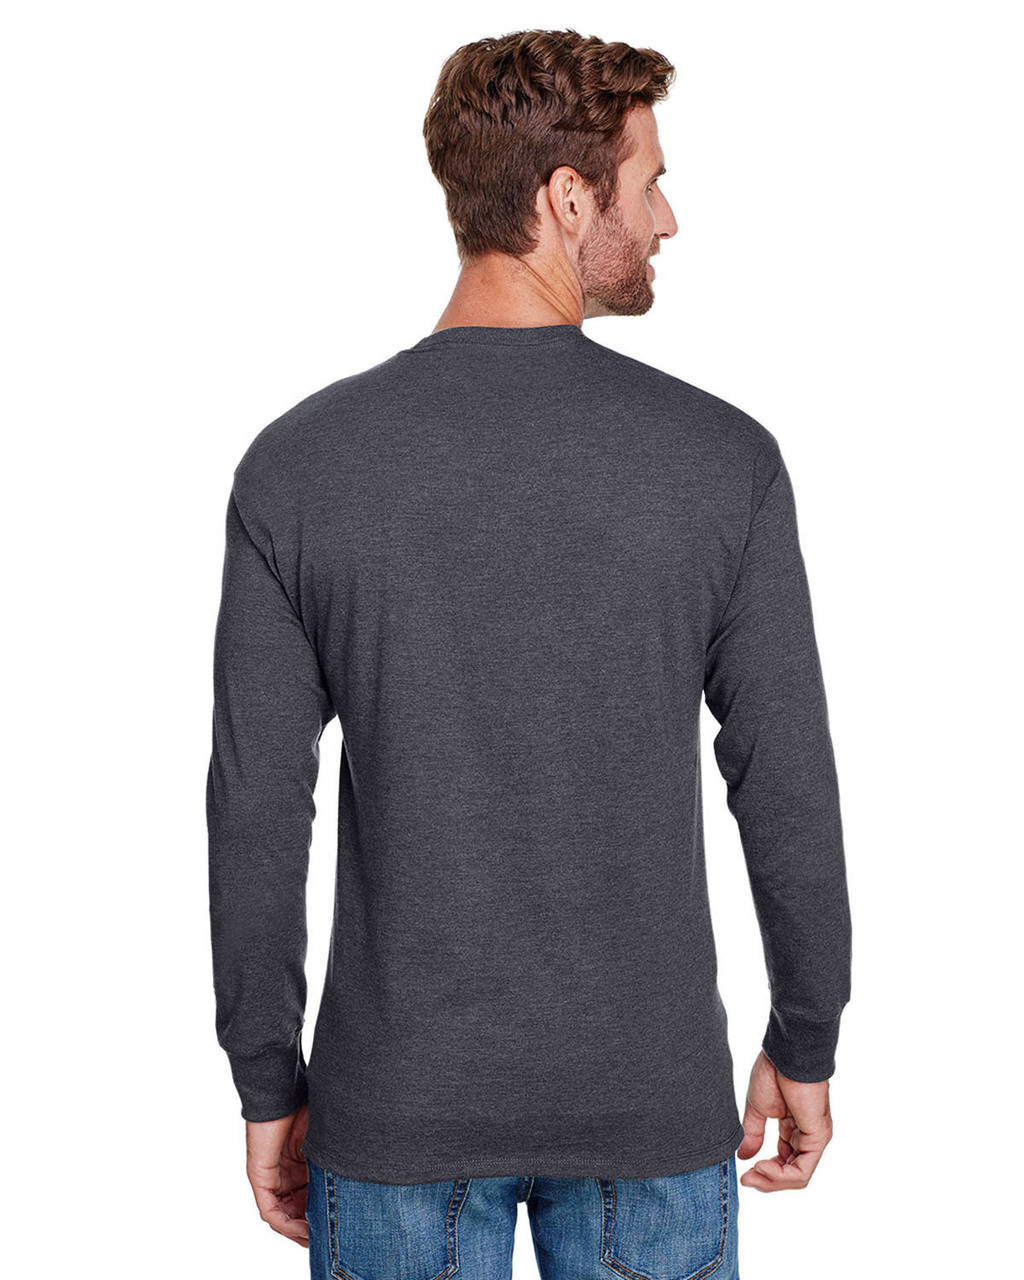 Charcoal Heather - CP15 Champion Adult Long-Sleeve Ringspun T-Shirt | BlankClothing.ca